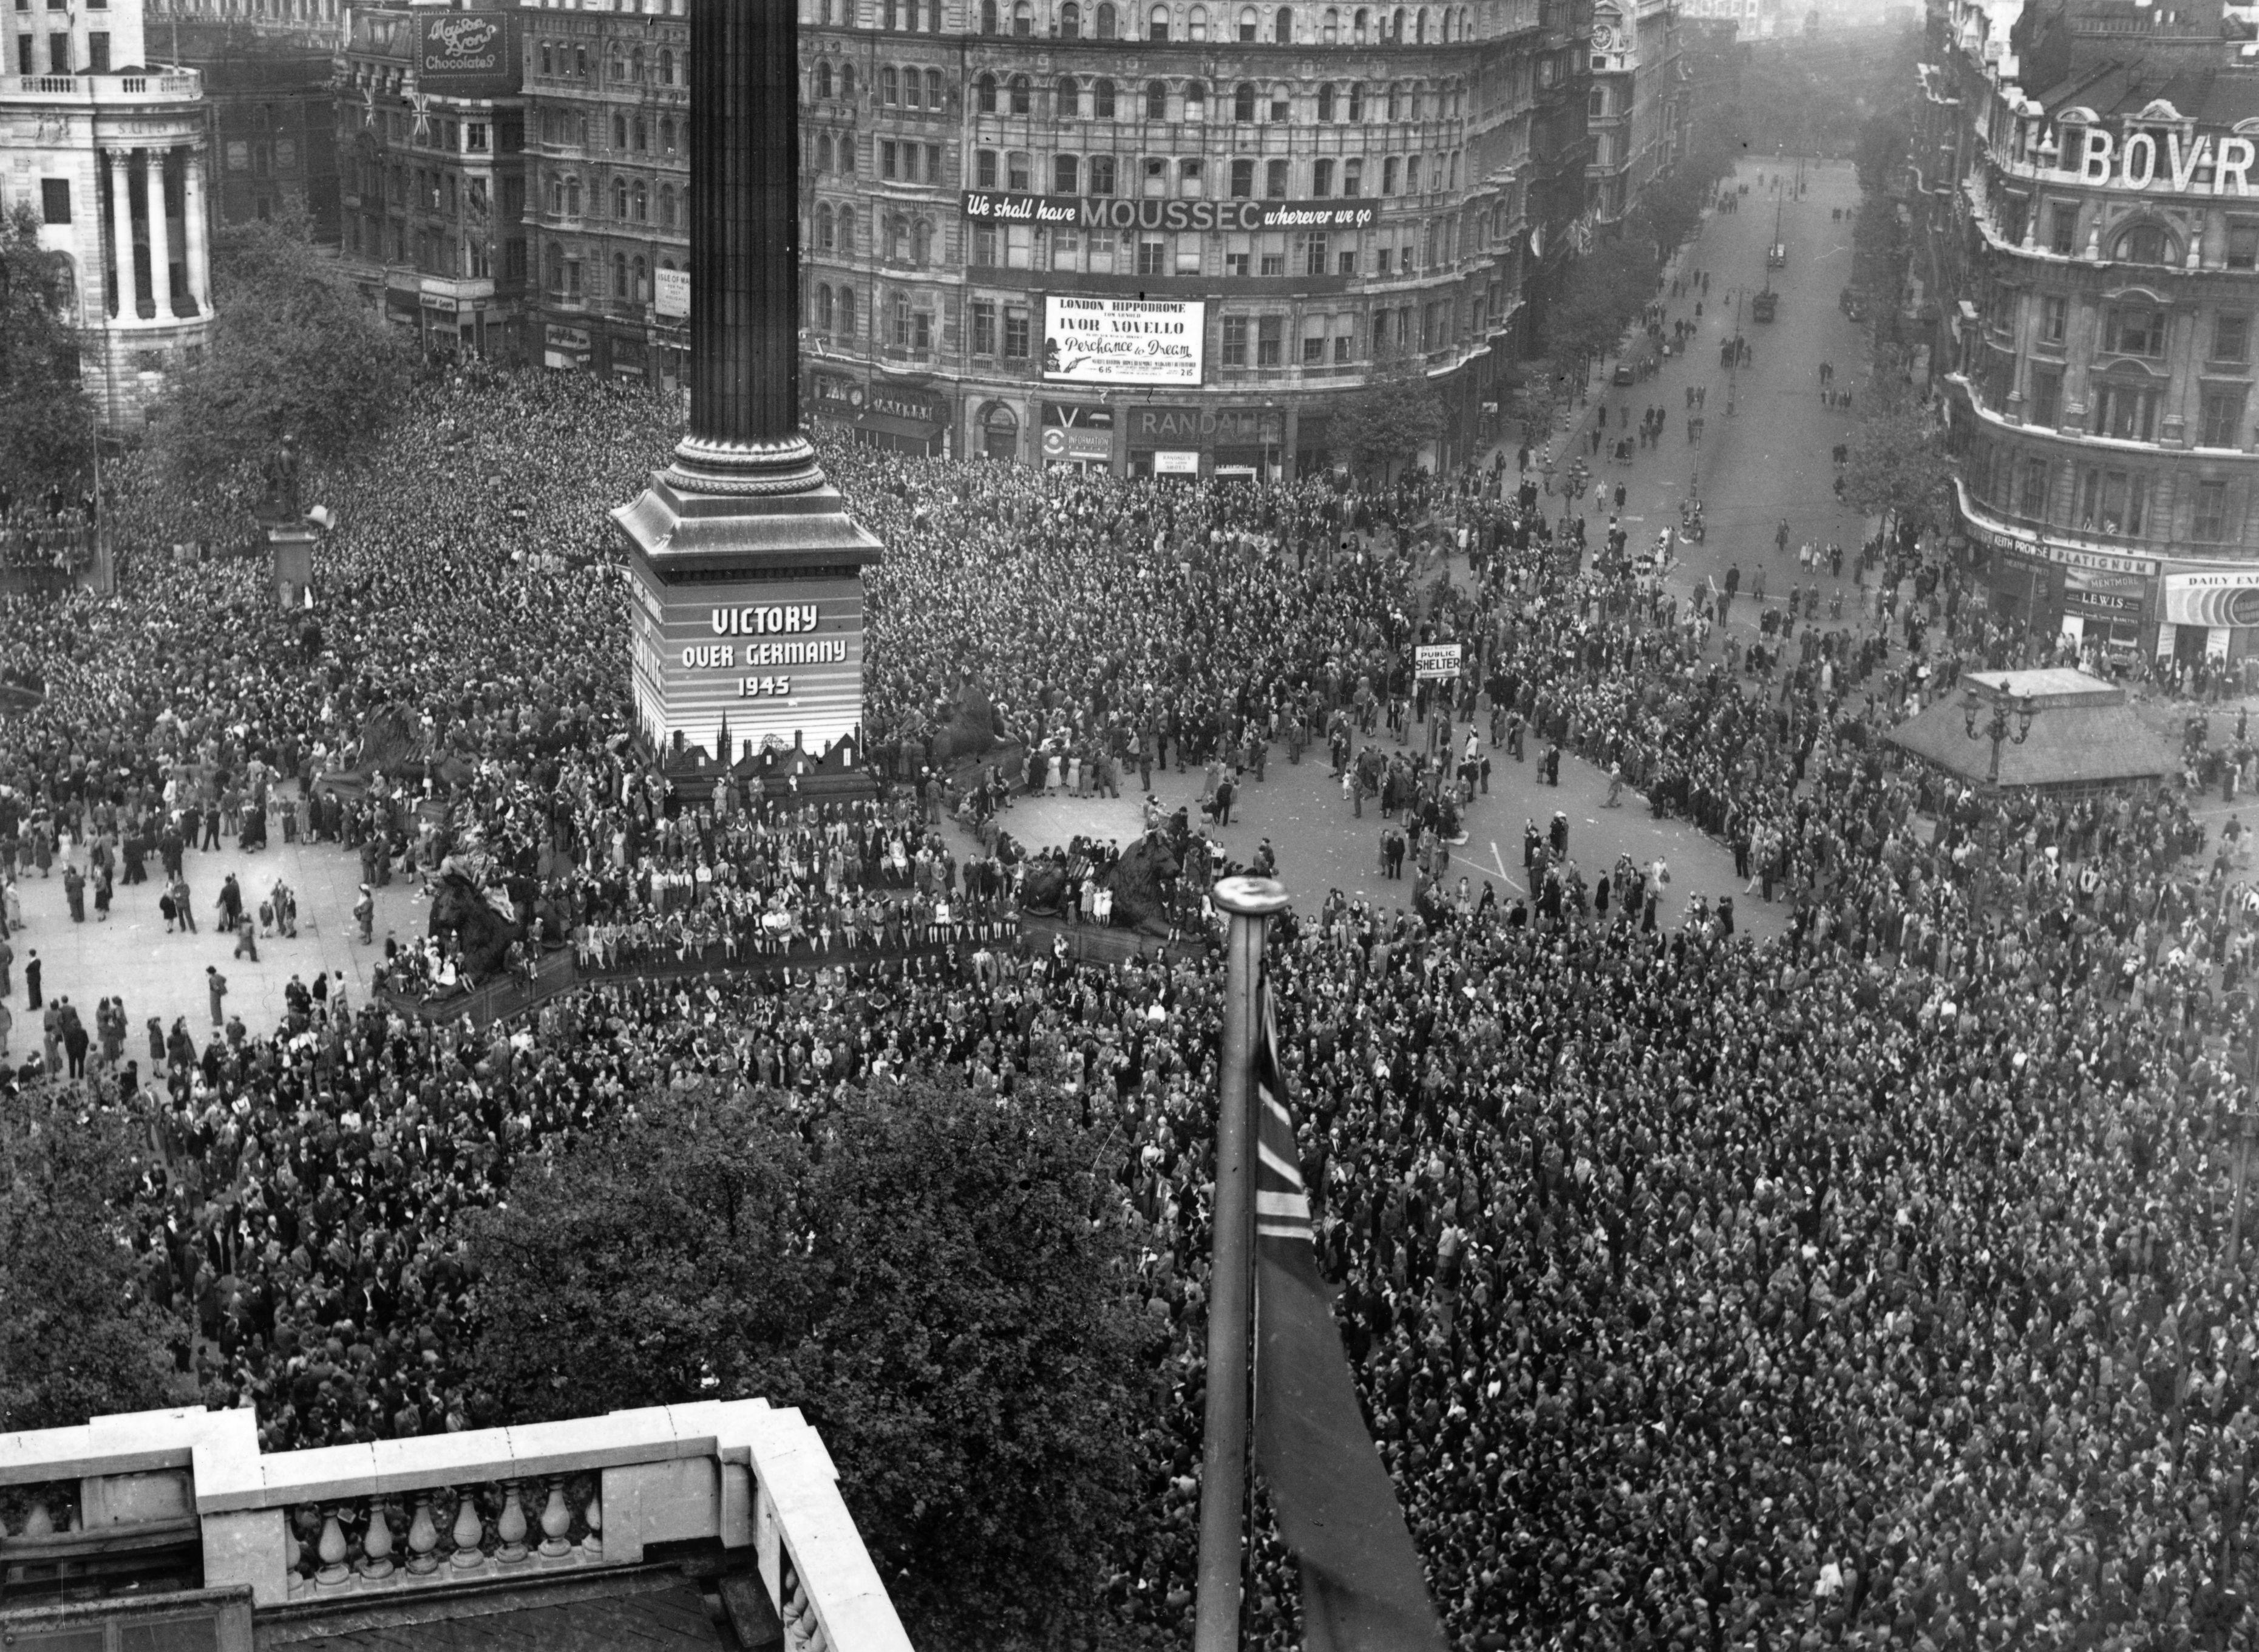 VE day, held to commemorate the official end of World War II in Europe, is celebrated by crowds at Trafalgar Square in London, 8th May 1945. (Photo by Fred Morley/Fox Photos/Hulton Archive/Getty Images)